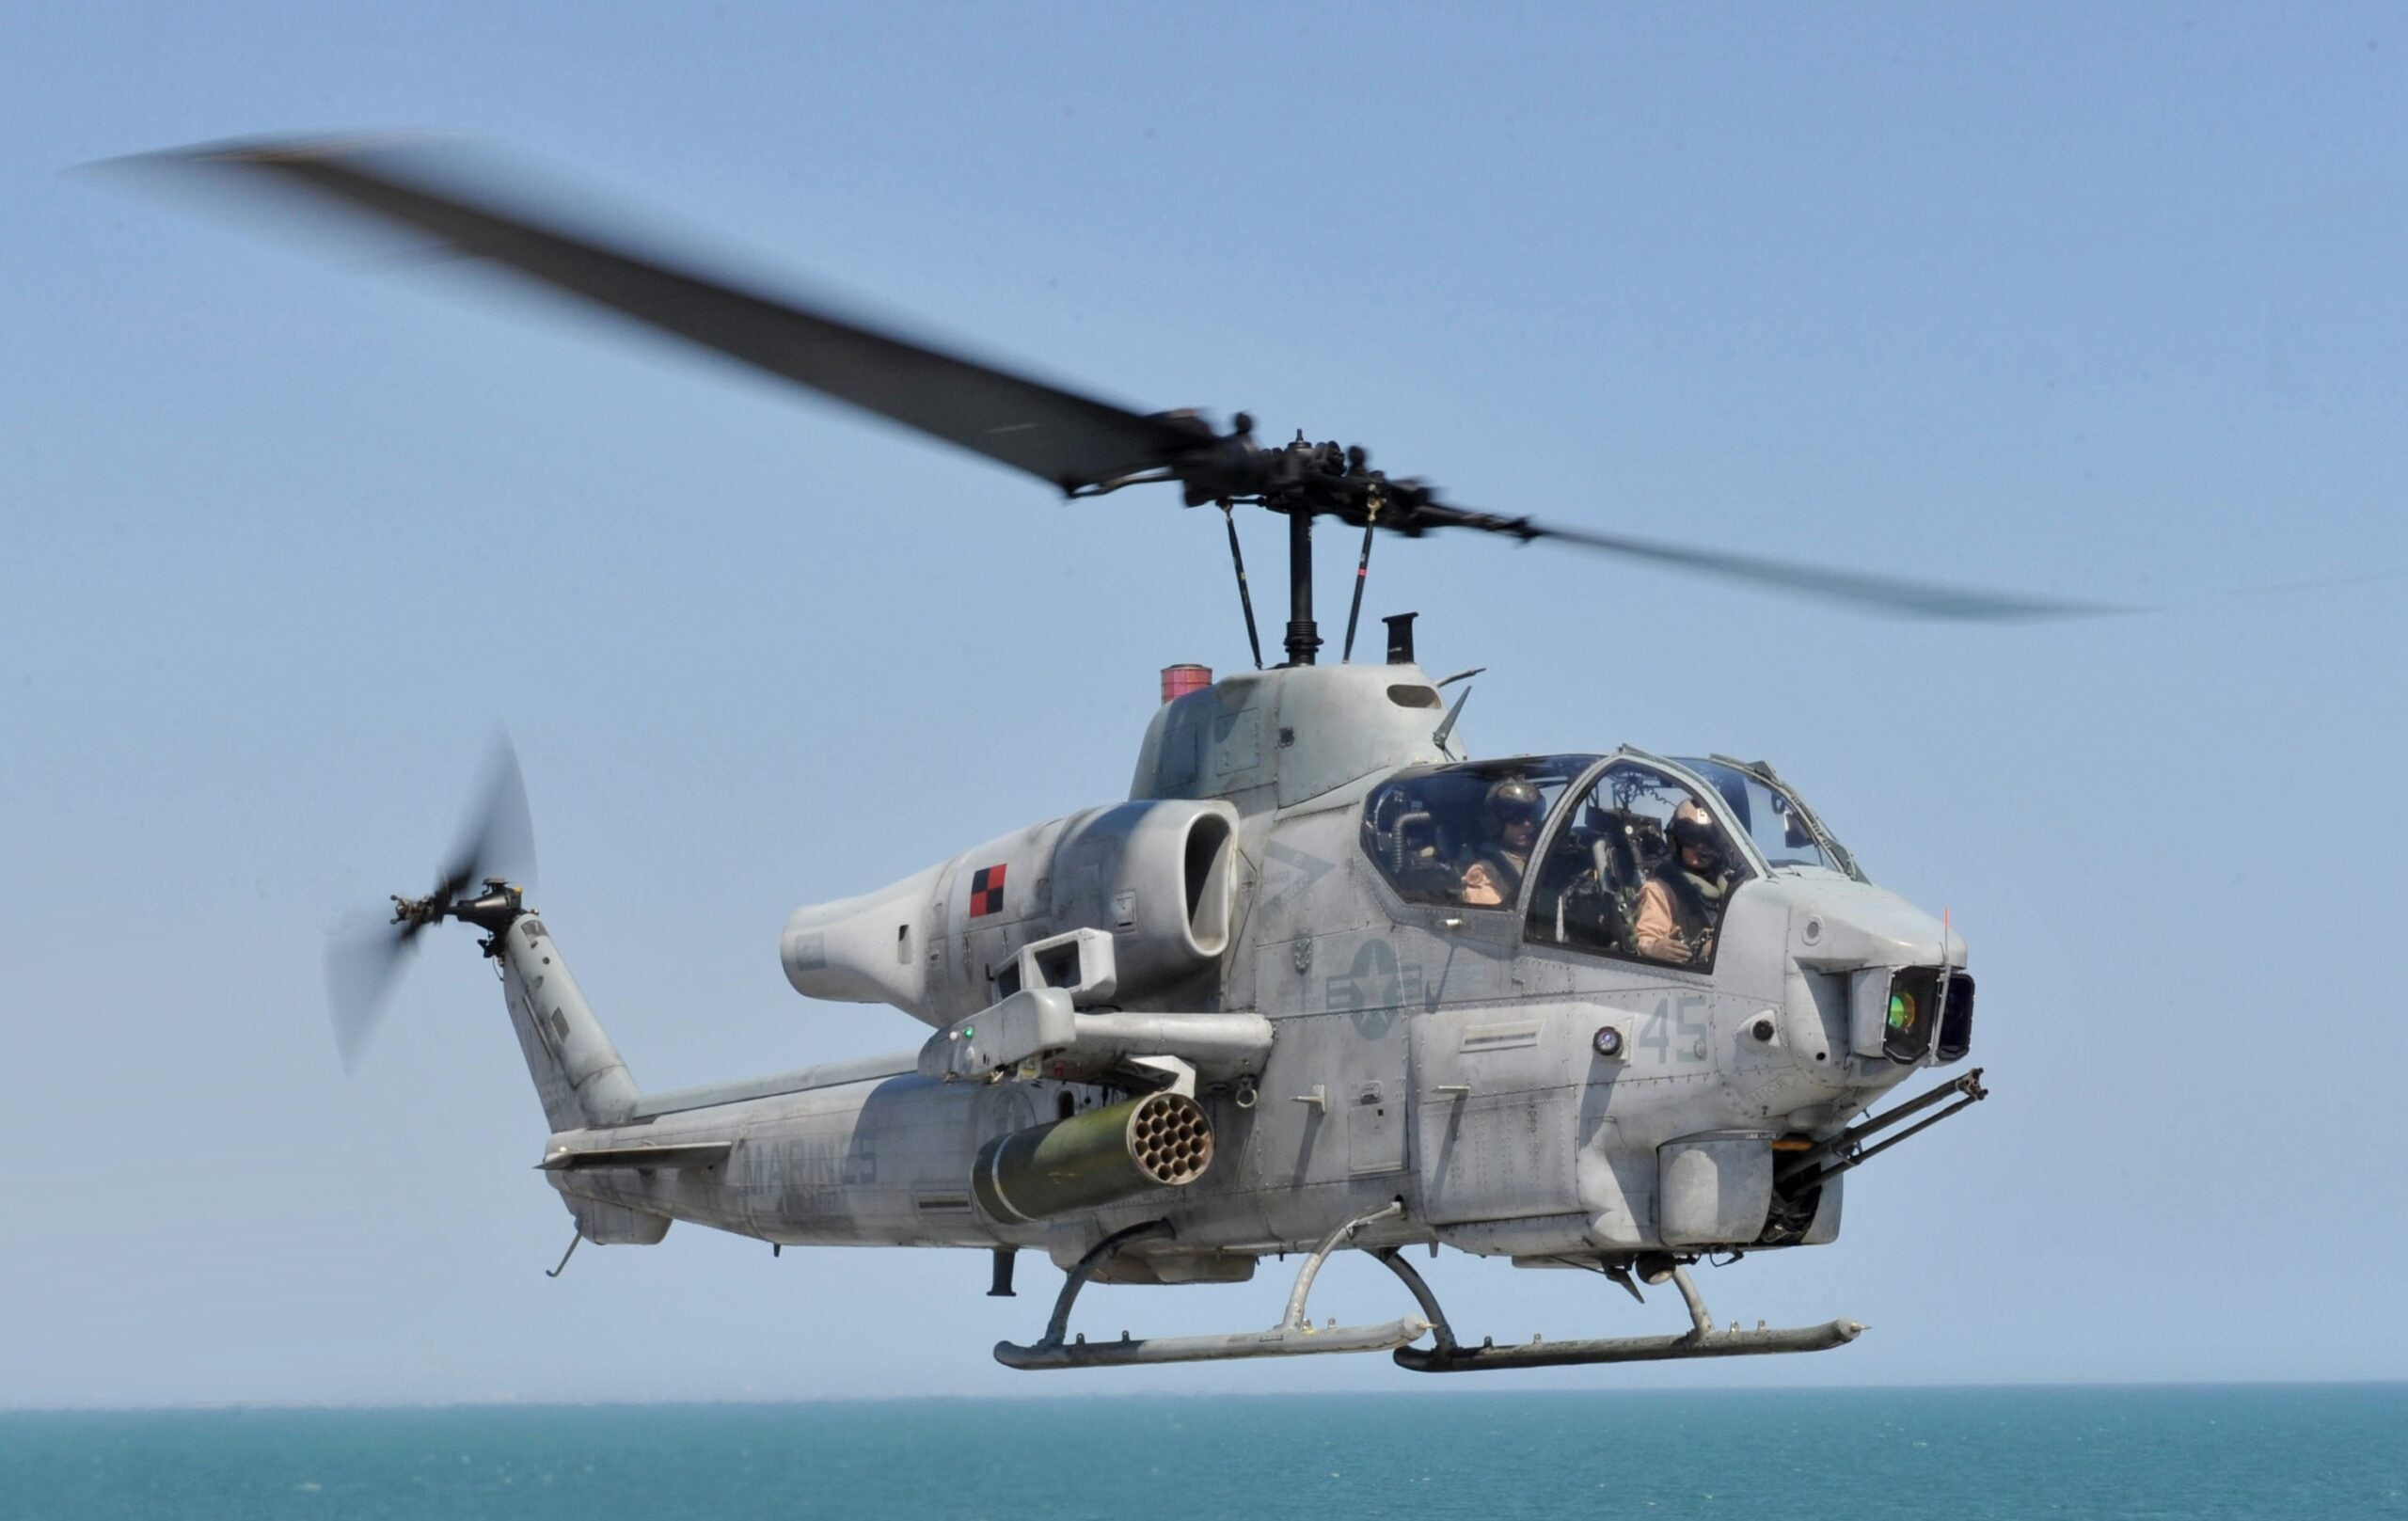 The Marine Corps AH-1W Super Cobra makes its final flight after more than 30 years of service